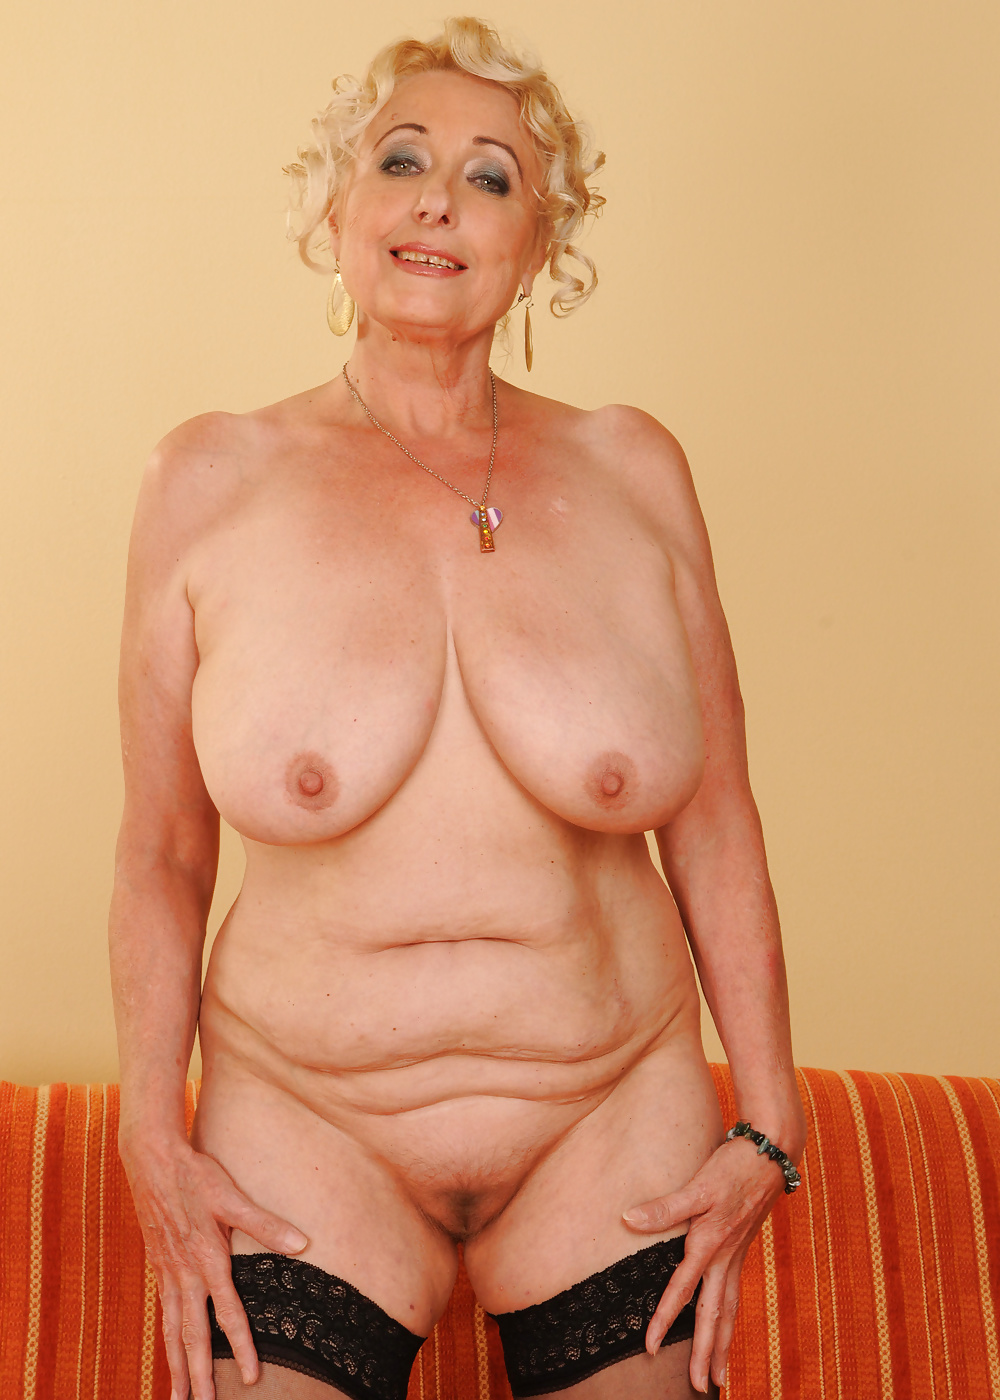 Online porn is very old grandmother